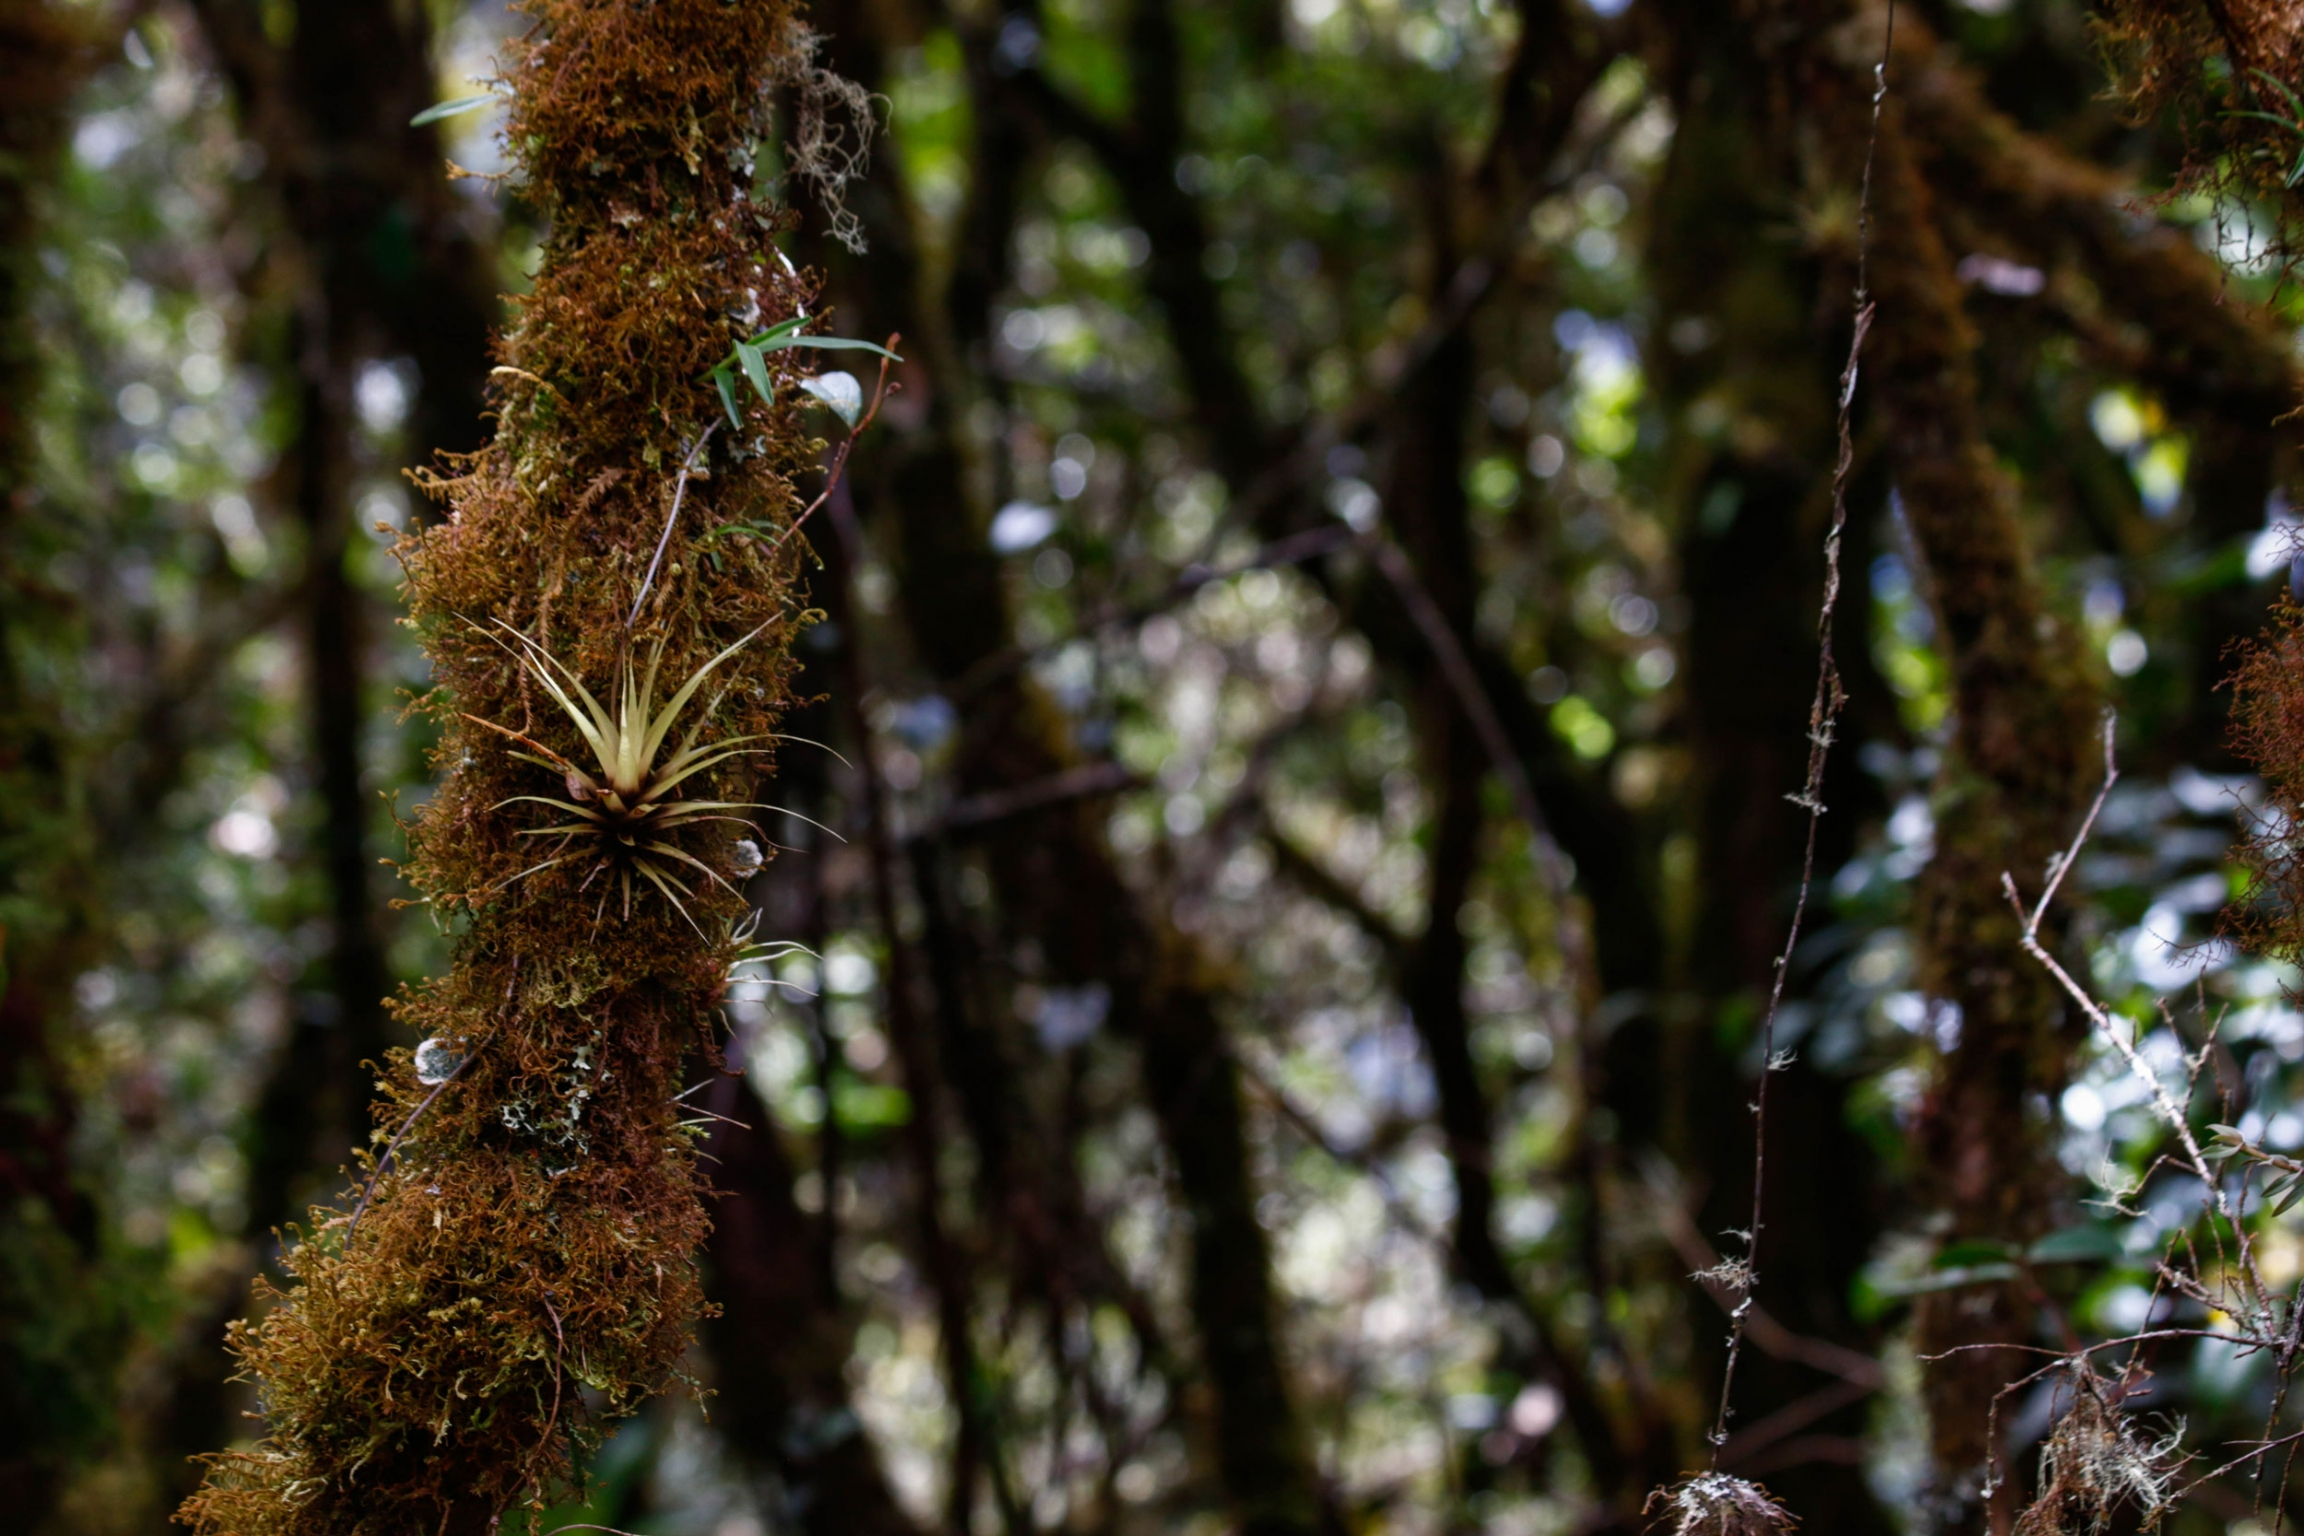 A close-up photograph of the bromeliads and mosses of the cloud forest.